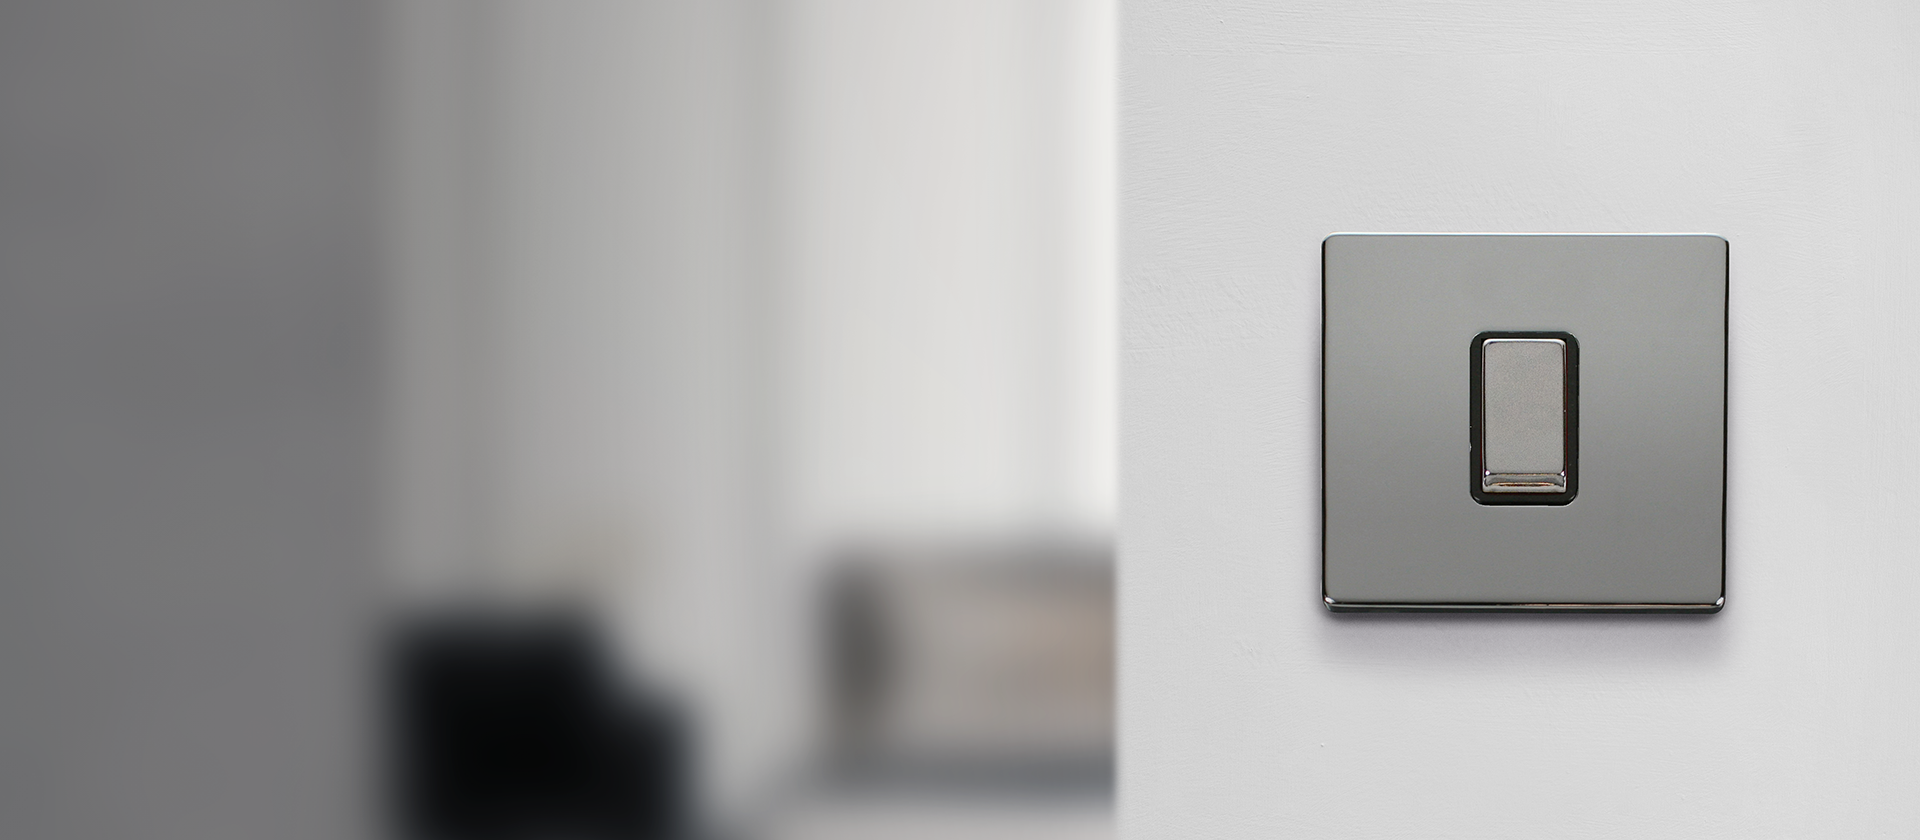 Control the brightness of your lights with our app or your favourite voice device.